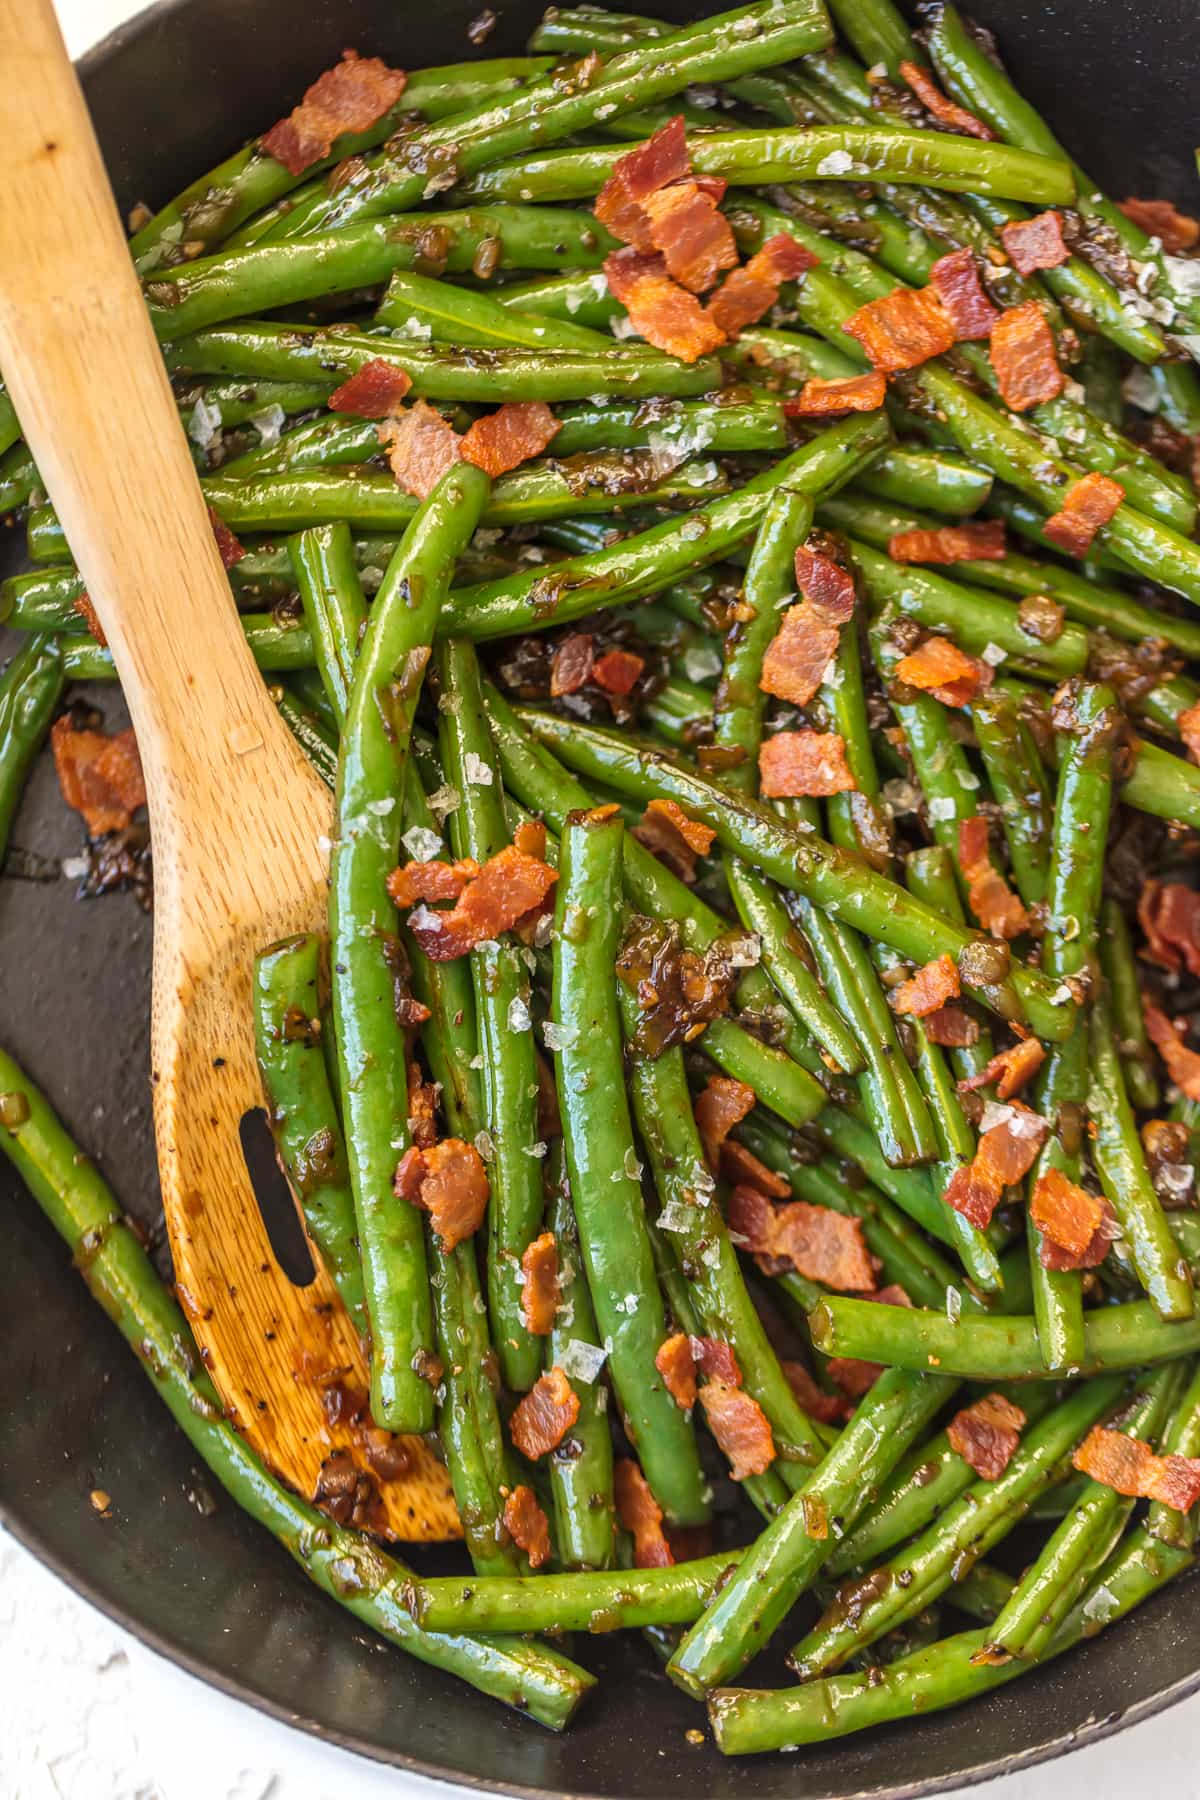 Skillet Green Beans recipe with bacon and bourbon